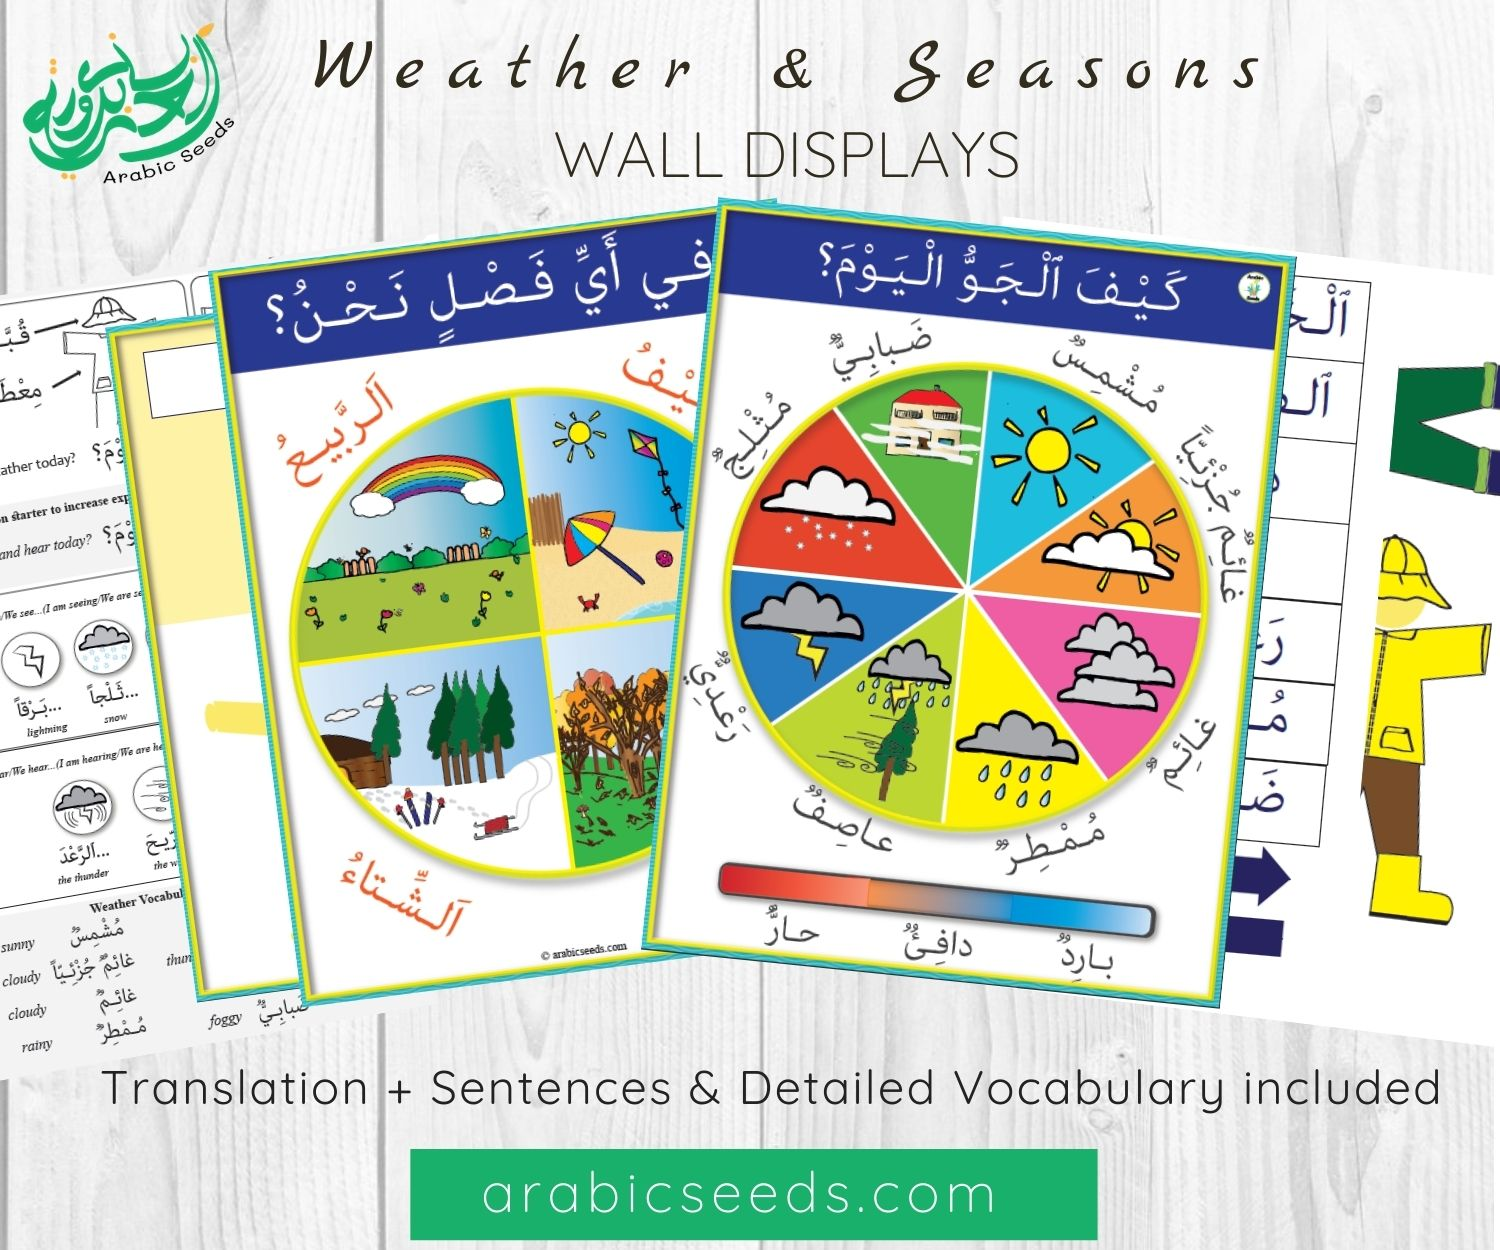 Arabic Seasons, Weather & Clothes - Display_DIY Bulletin Board - Arabic Seeds - Teaching Resources for kids